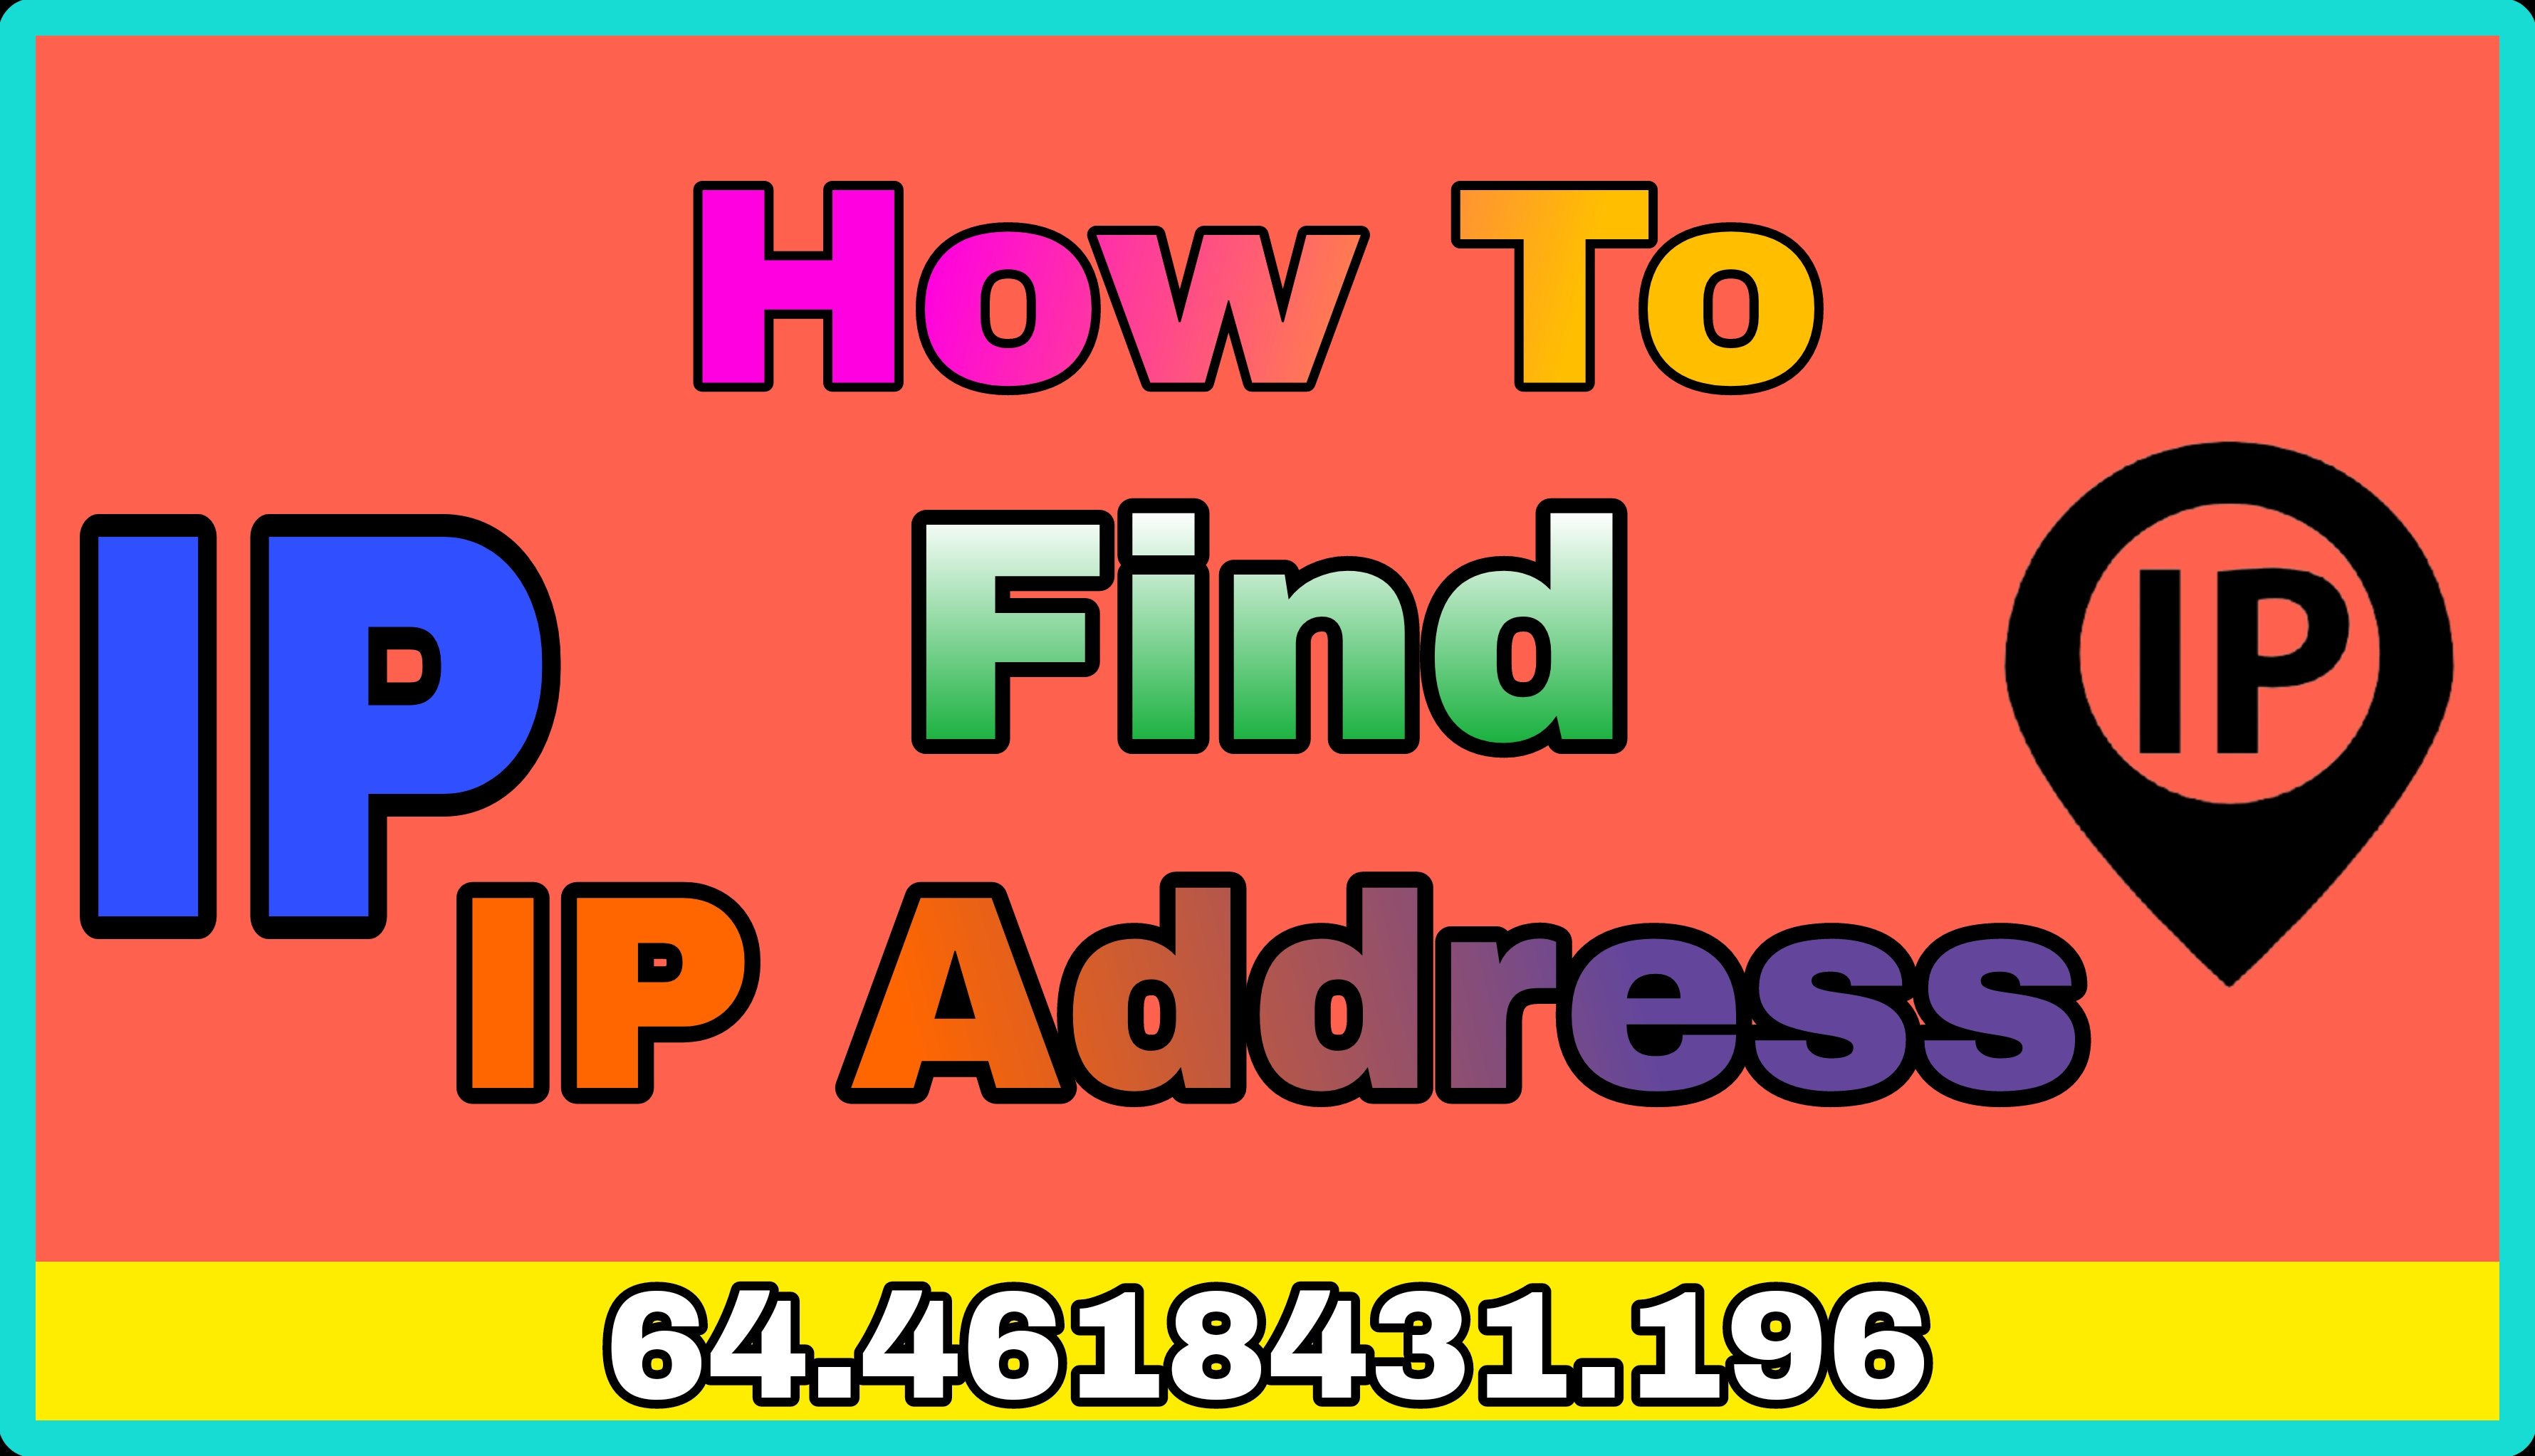 How To Find IP Address Of Any Device In Hindi